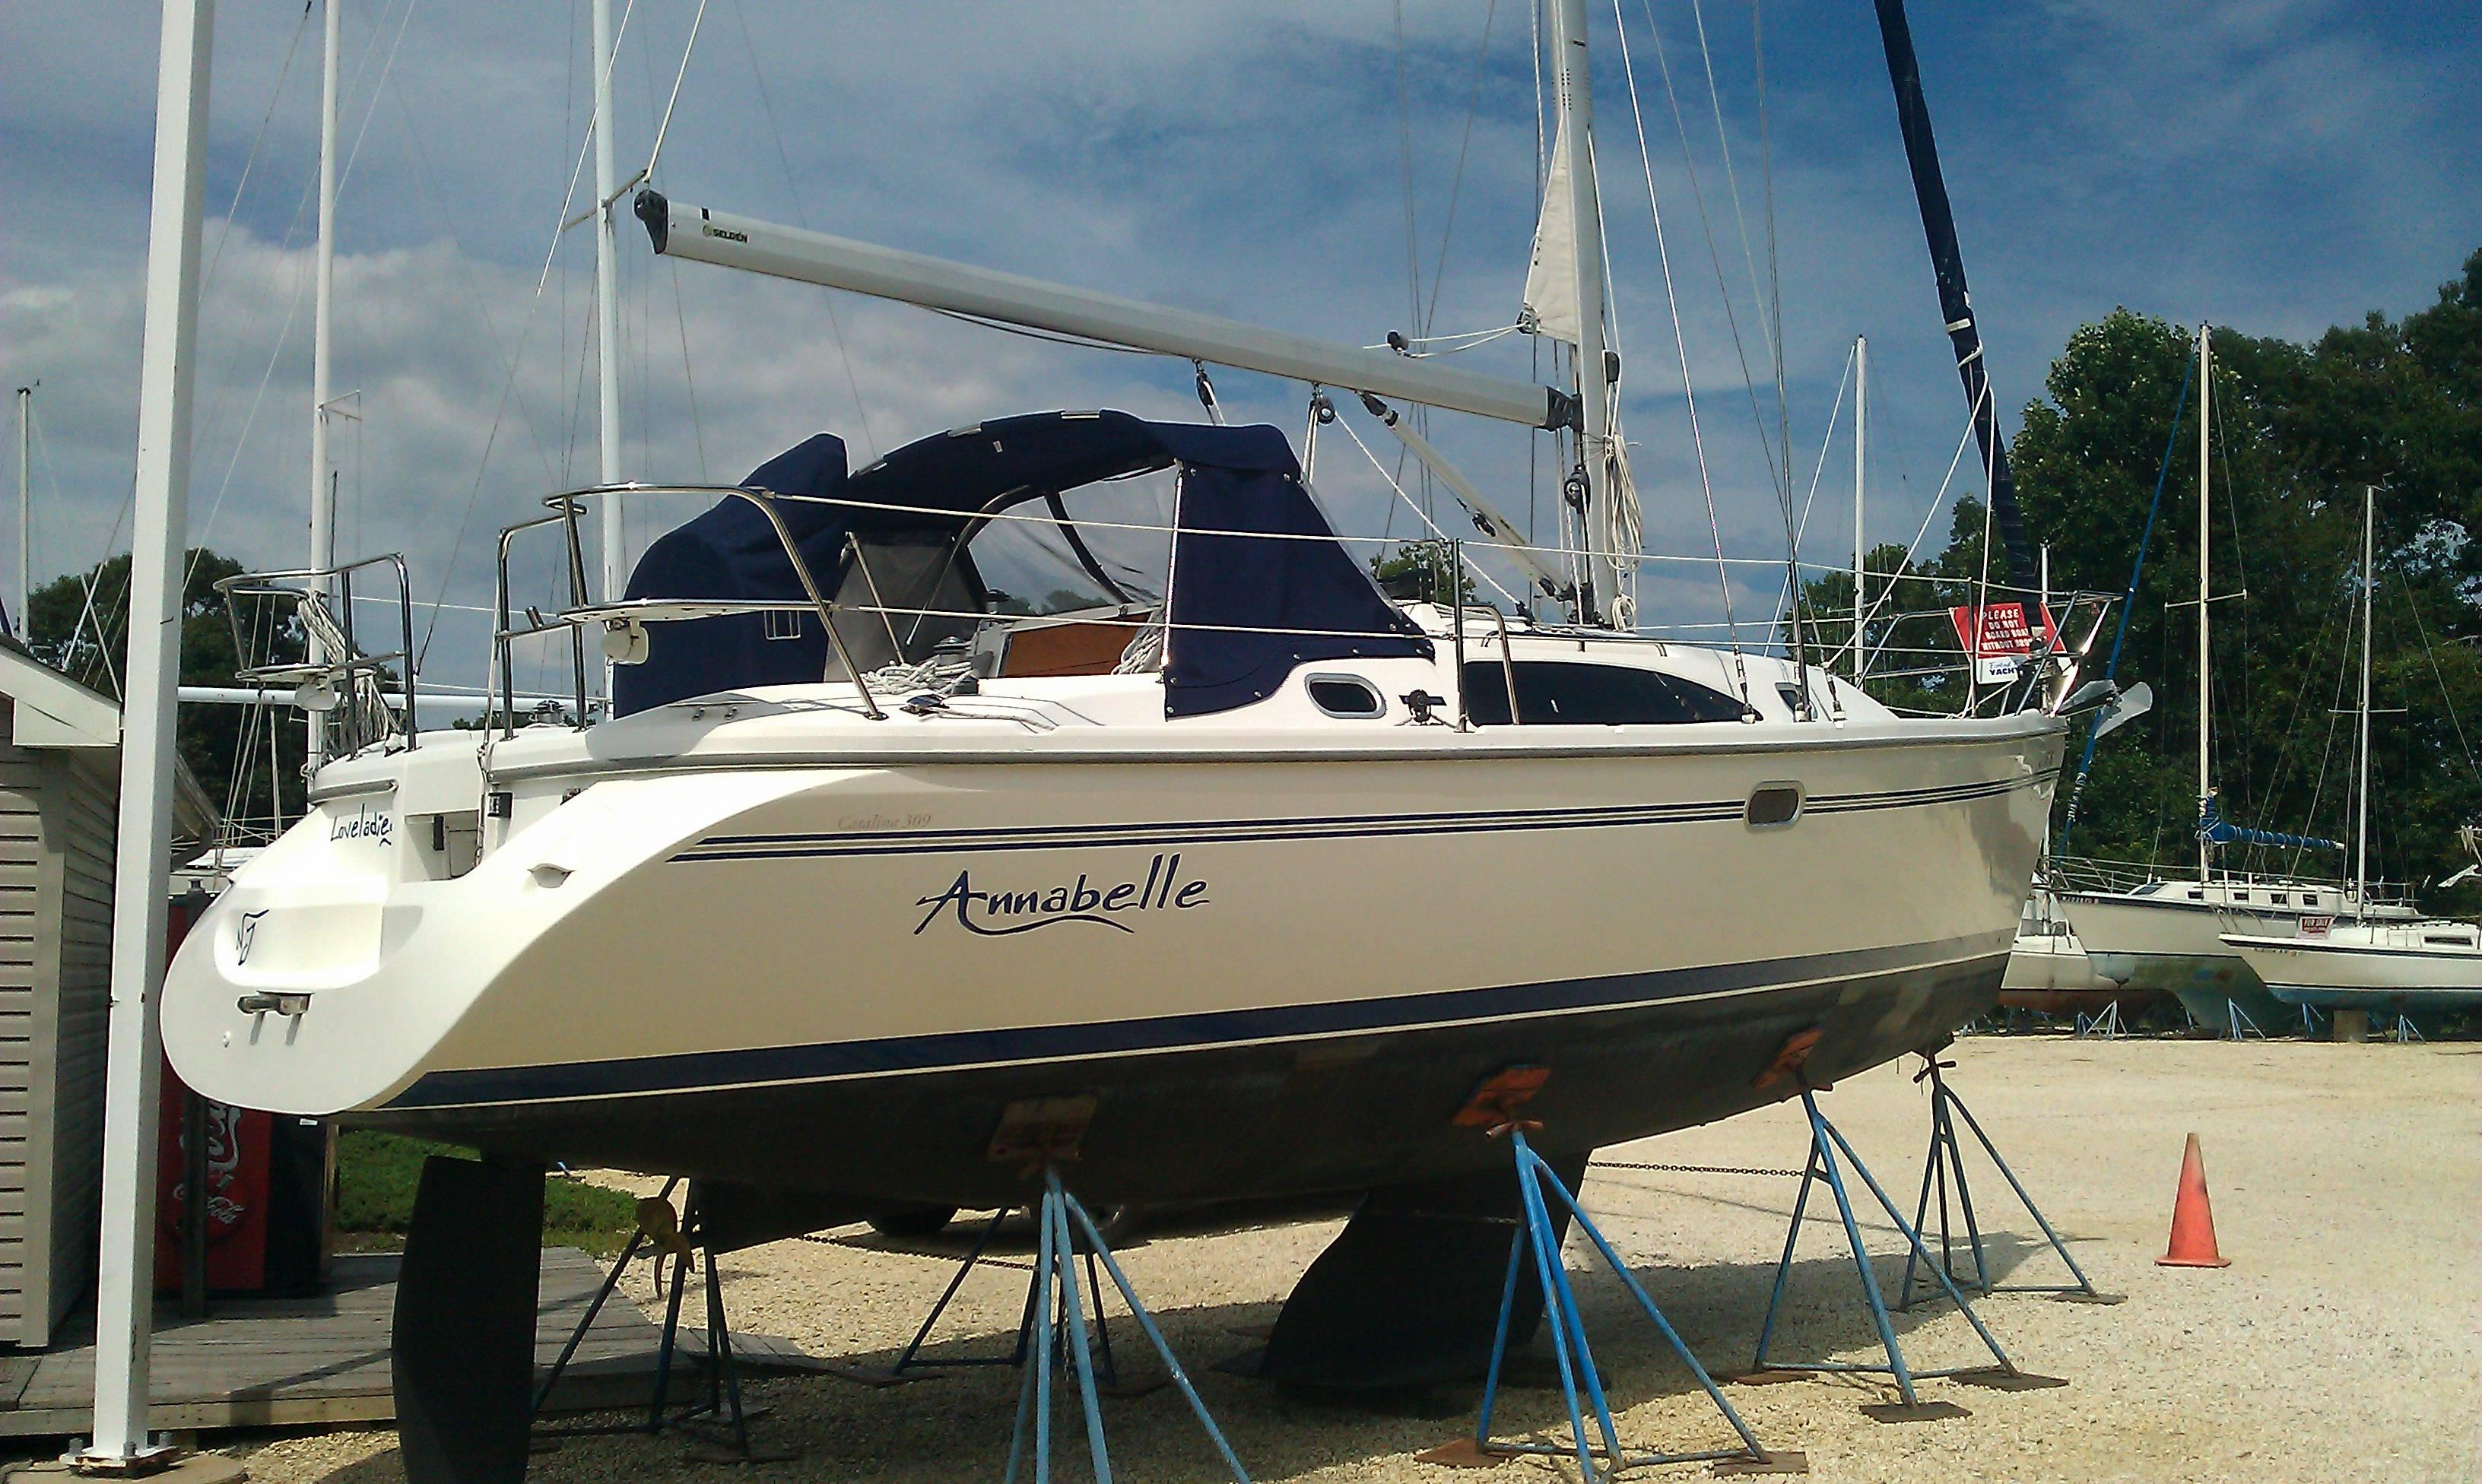 2010 Catalina 309 Sail Boat For Sale - www.yachtworld.com